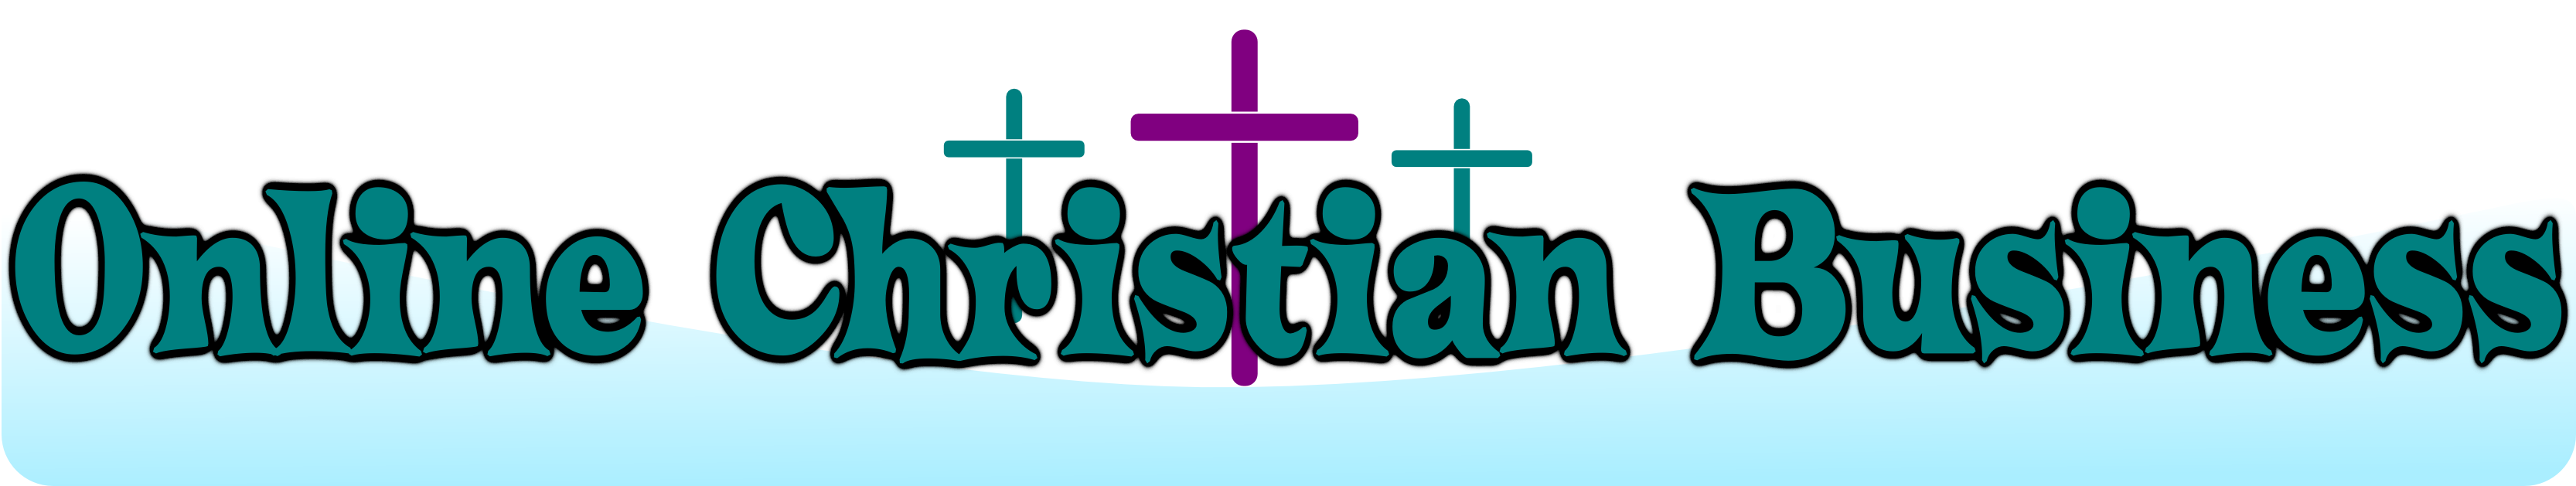 online christian business whole family products christian affiliate program